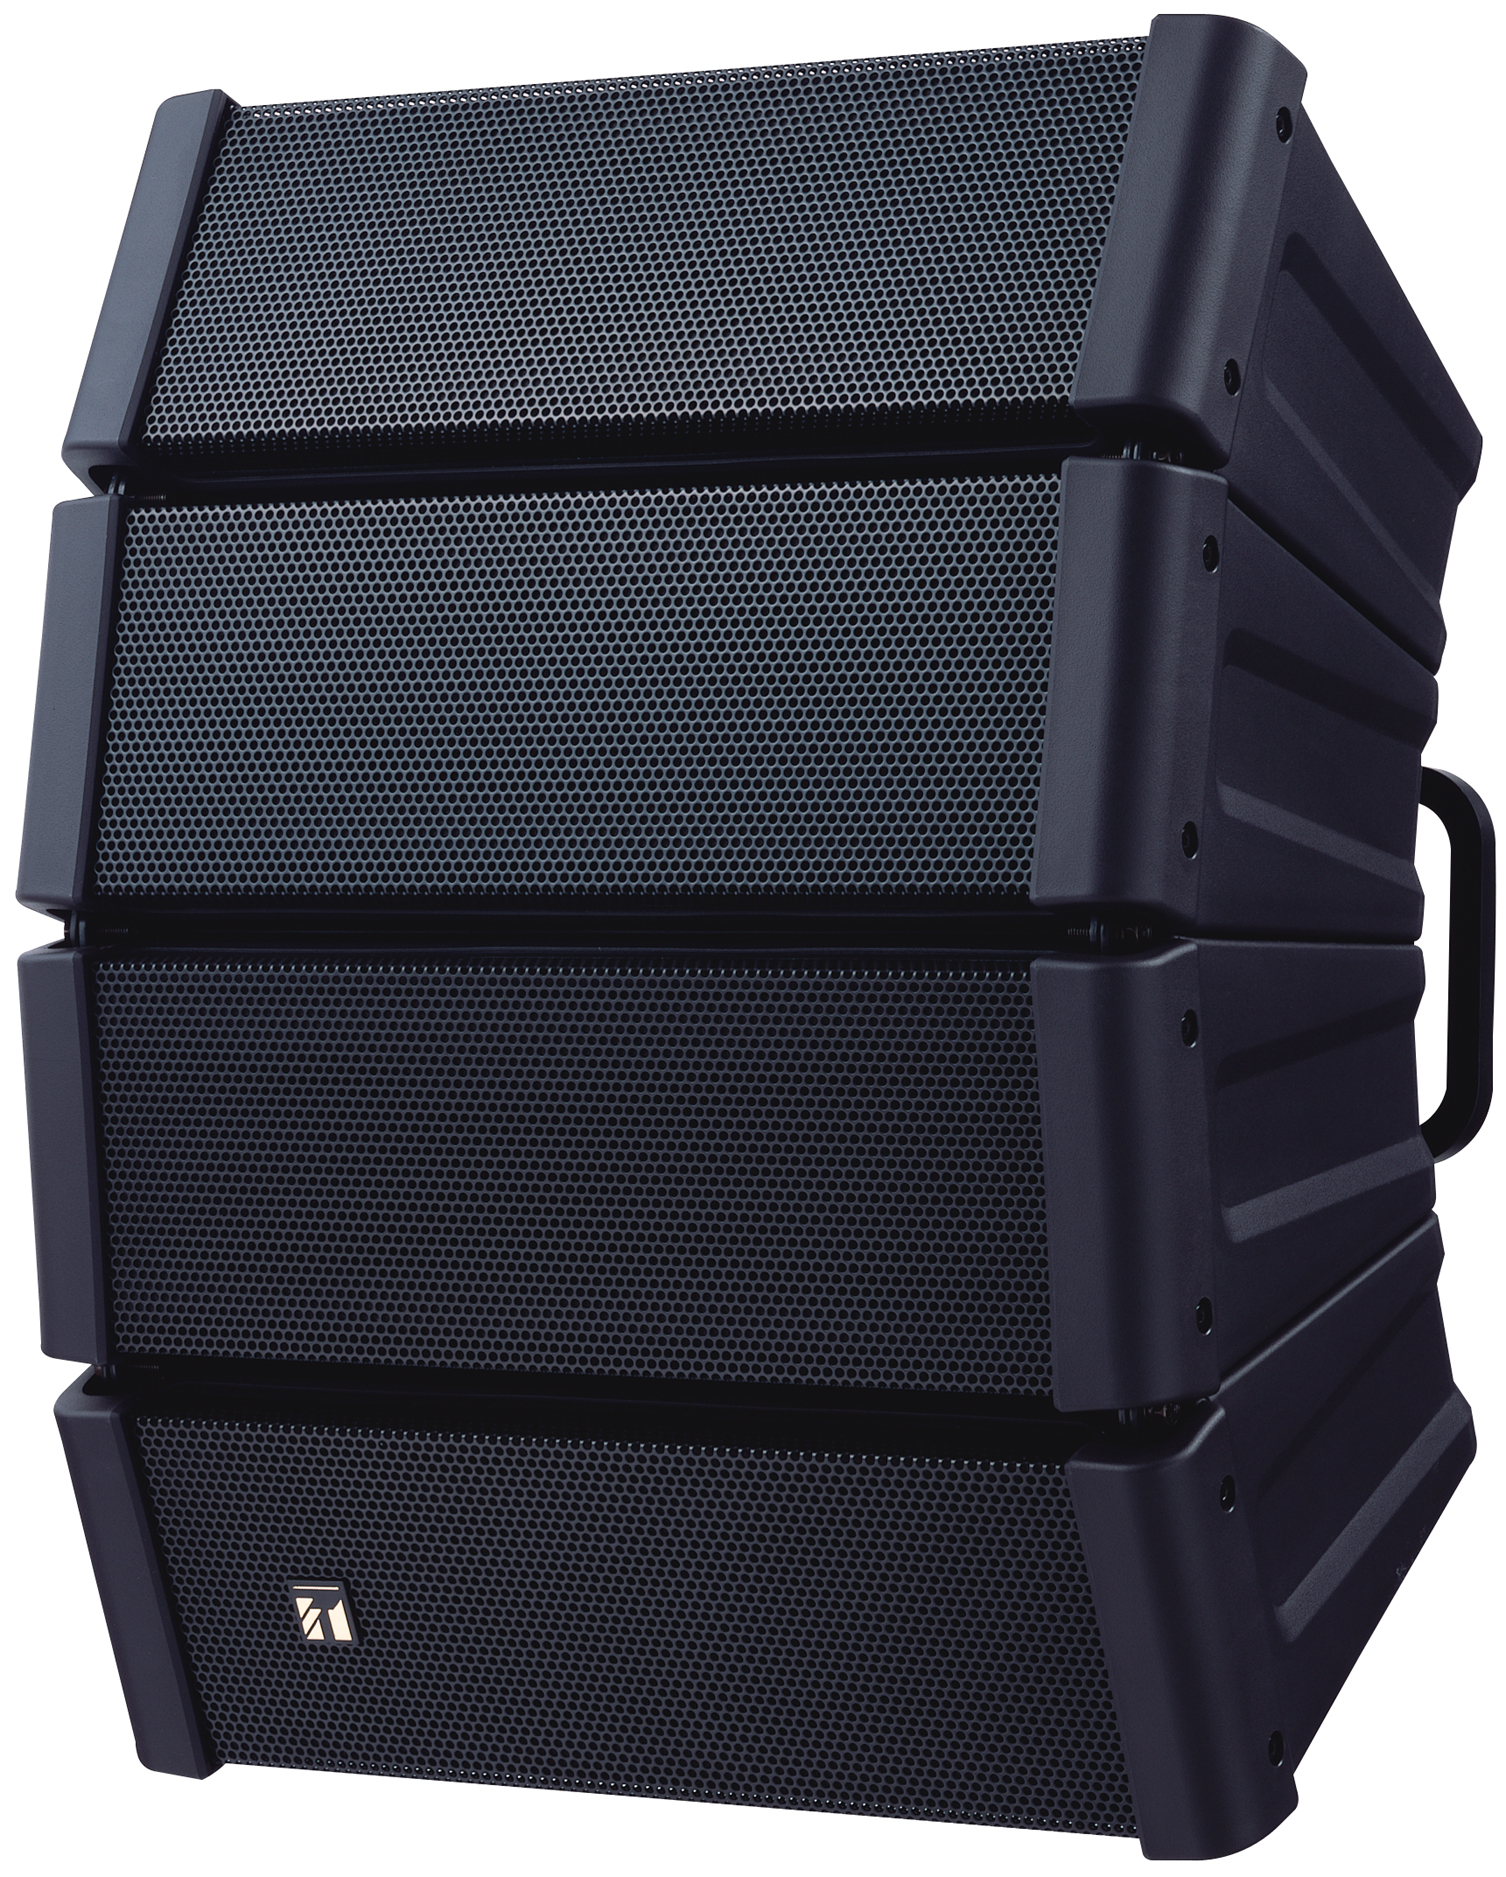 TOA HX-5B-WP Weather Resistant Compact Line Array Speaker System (Black)